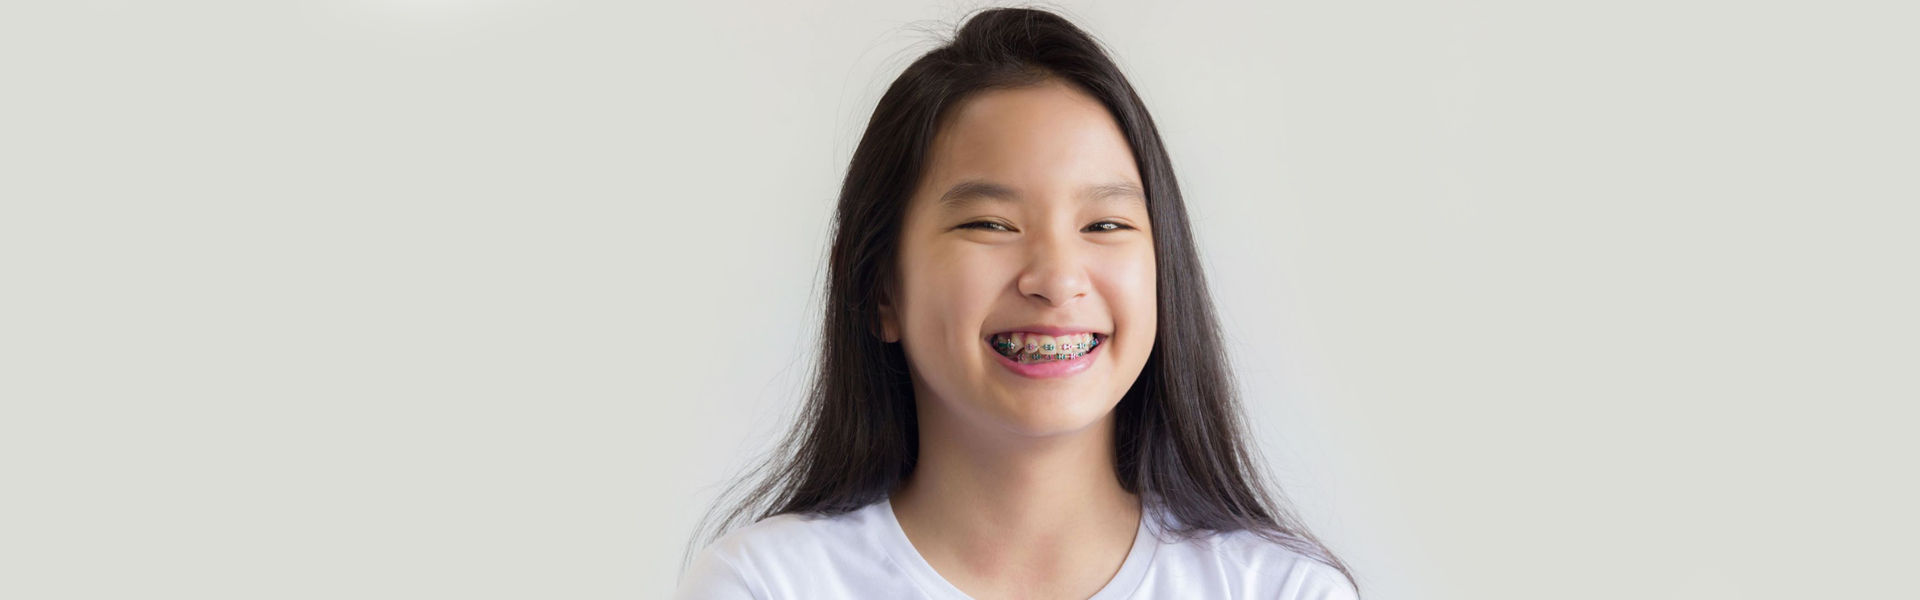 5 Reasons You Should Get Your Child Braces After Christmas